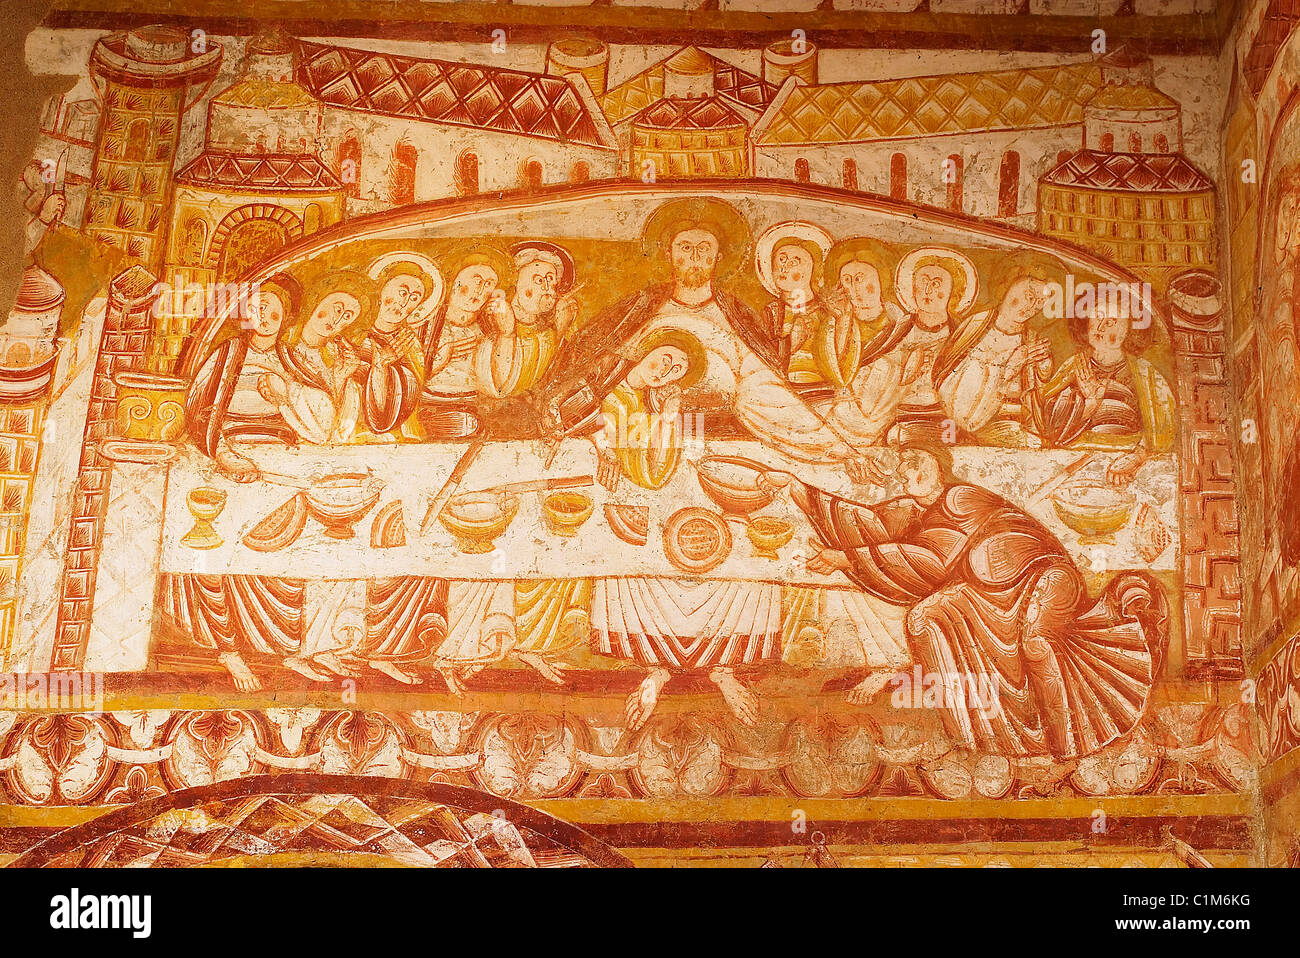 France Indre George Sand's Berry the church of Vic (XIIe century) remarkable frescos representing biblical scenes - Stock Image